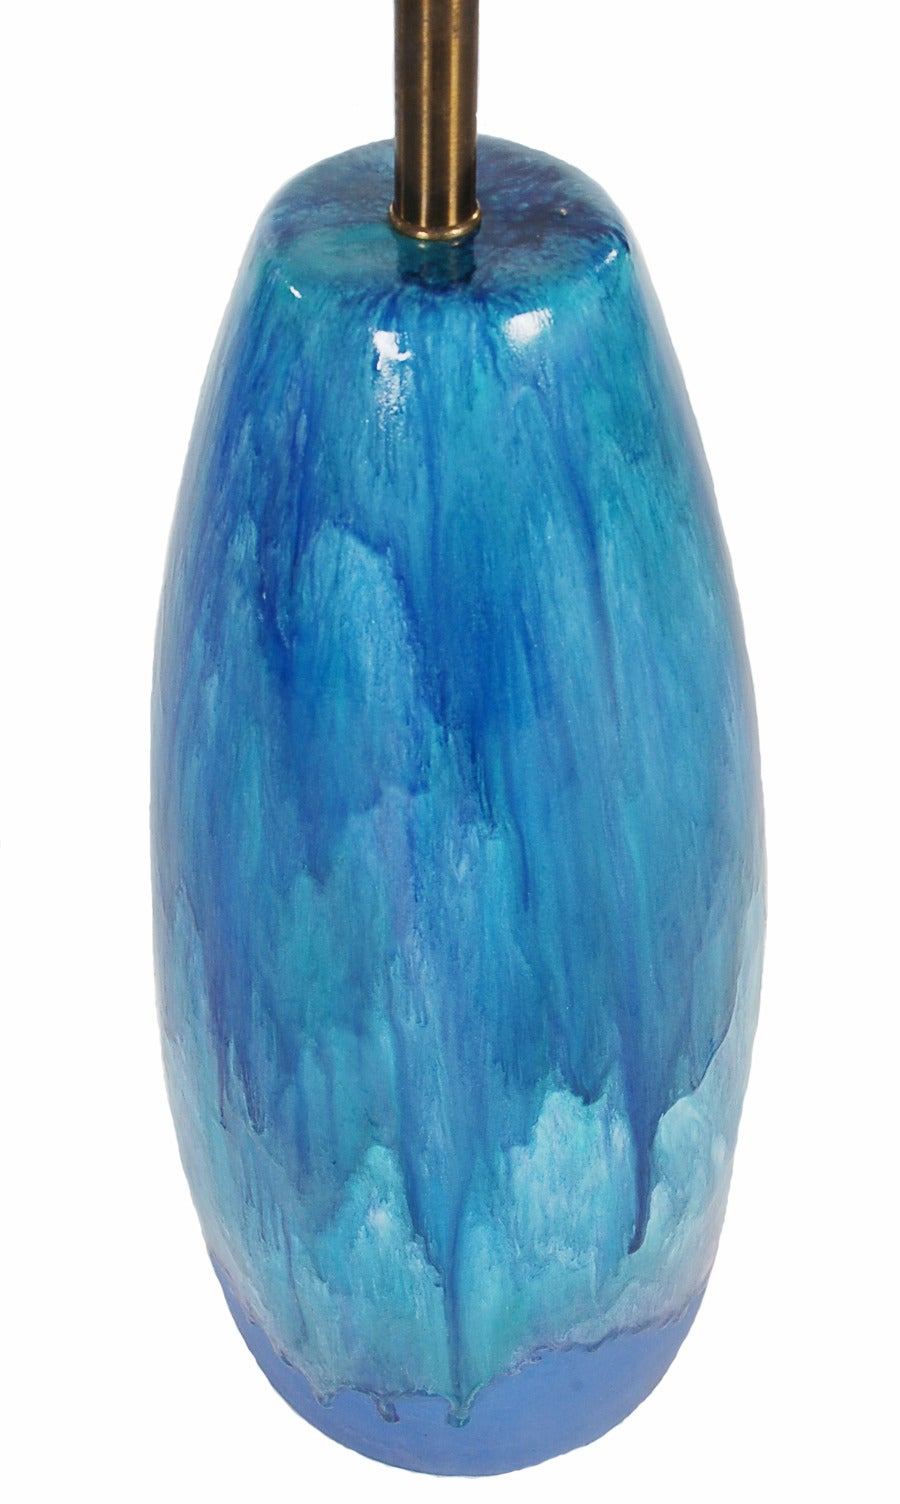 A very large and handsome looking glazed ceramic pottery lamp. Beautiful shades of blue that will cheer up any room.